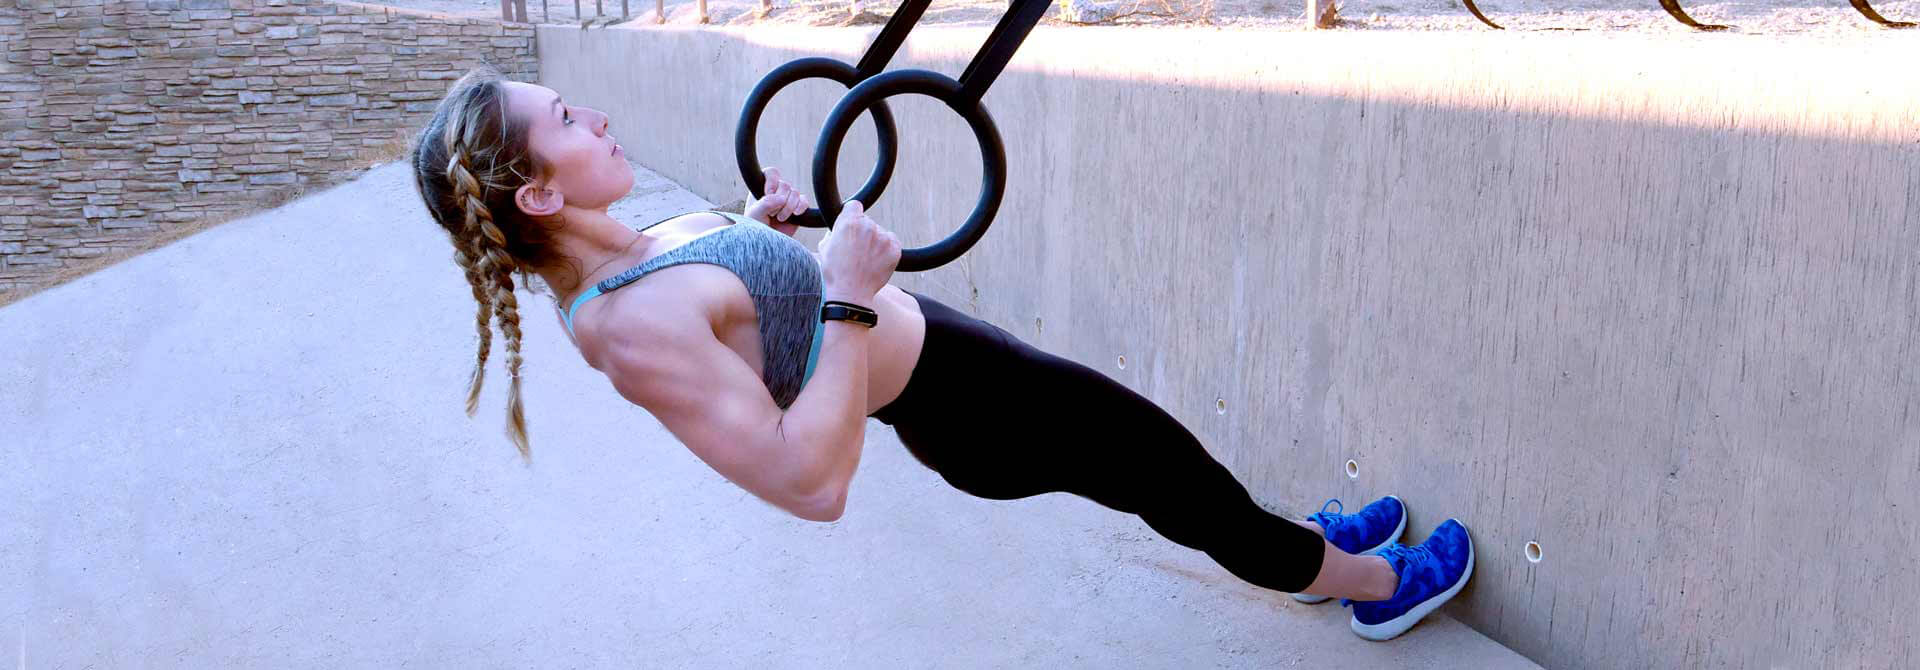 GymnasticBodies female athlete demonstrates a pull-up progression with rings.